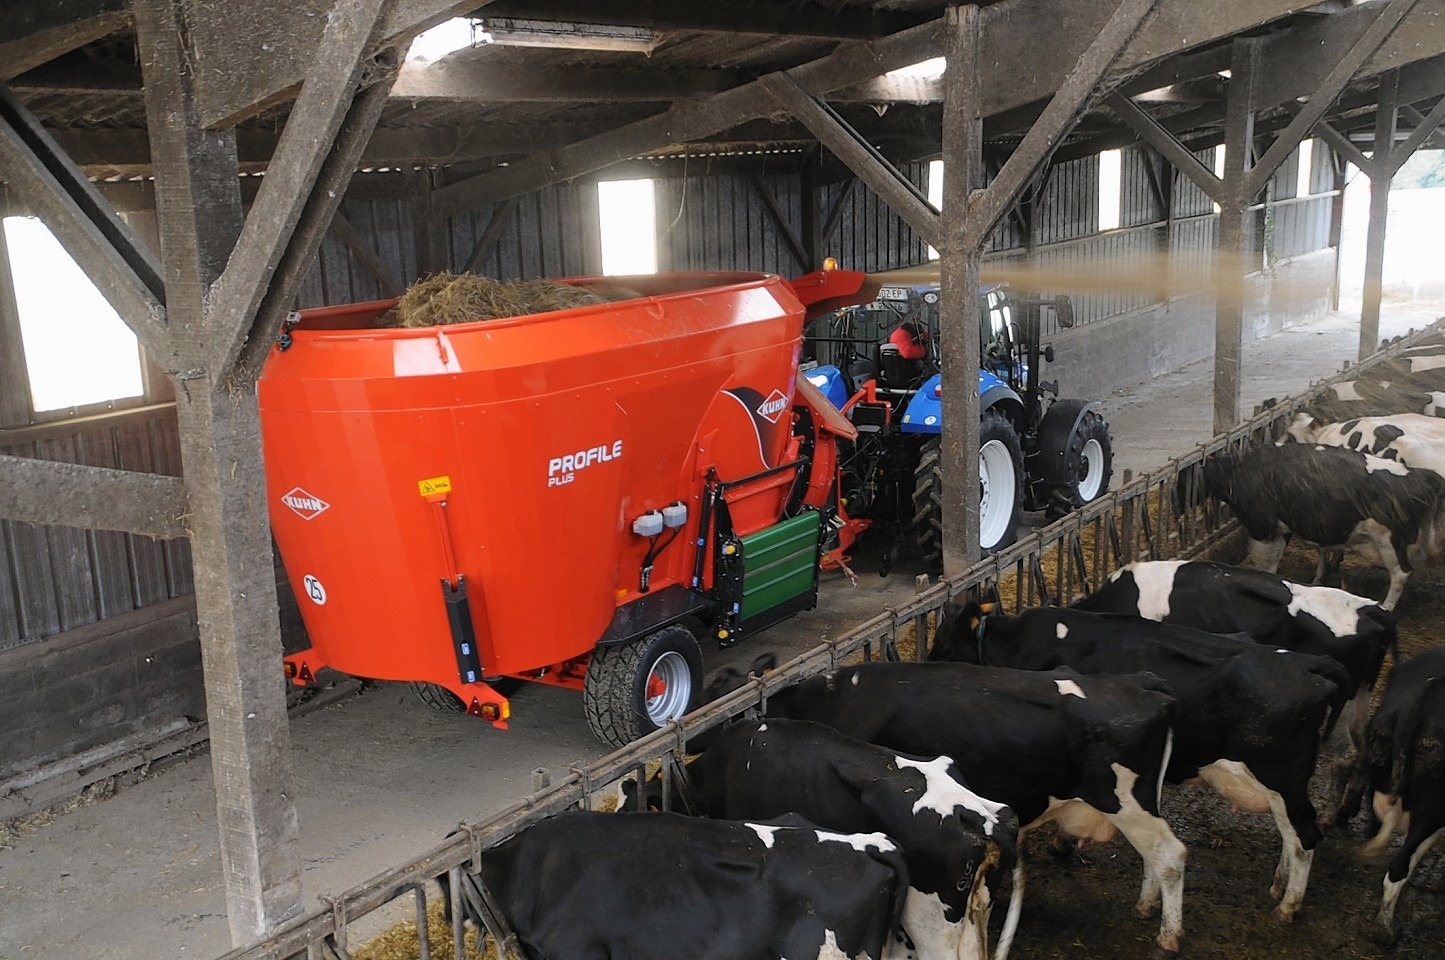 The new mixer wagon